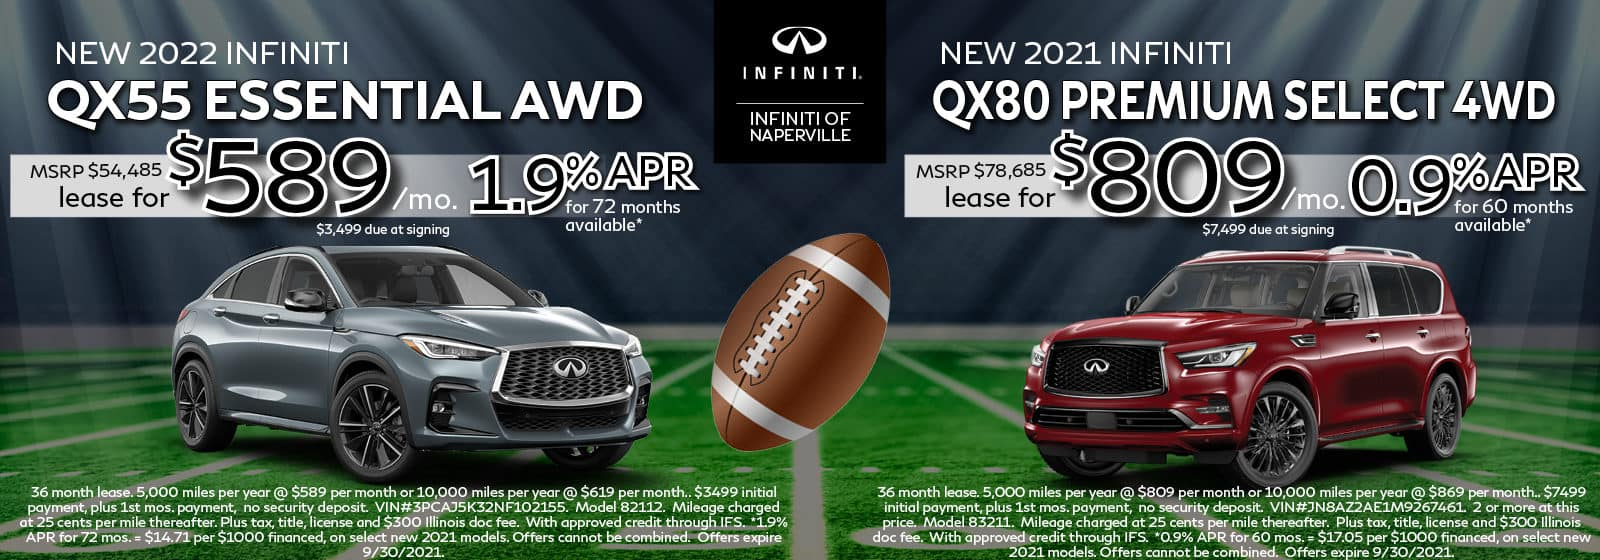 2022 INFINITI QX55 and 2021 INFINITI QX80 Lease Offers | INFINITI of Naperville